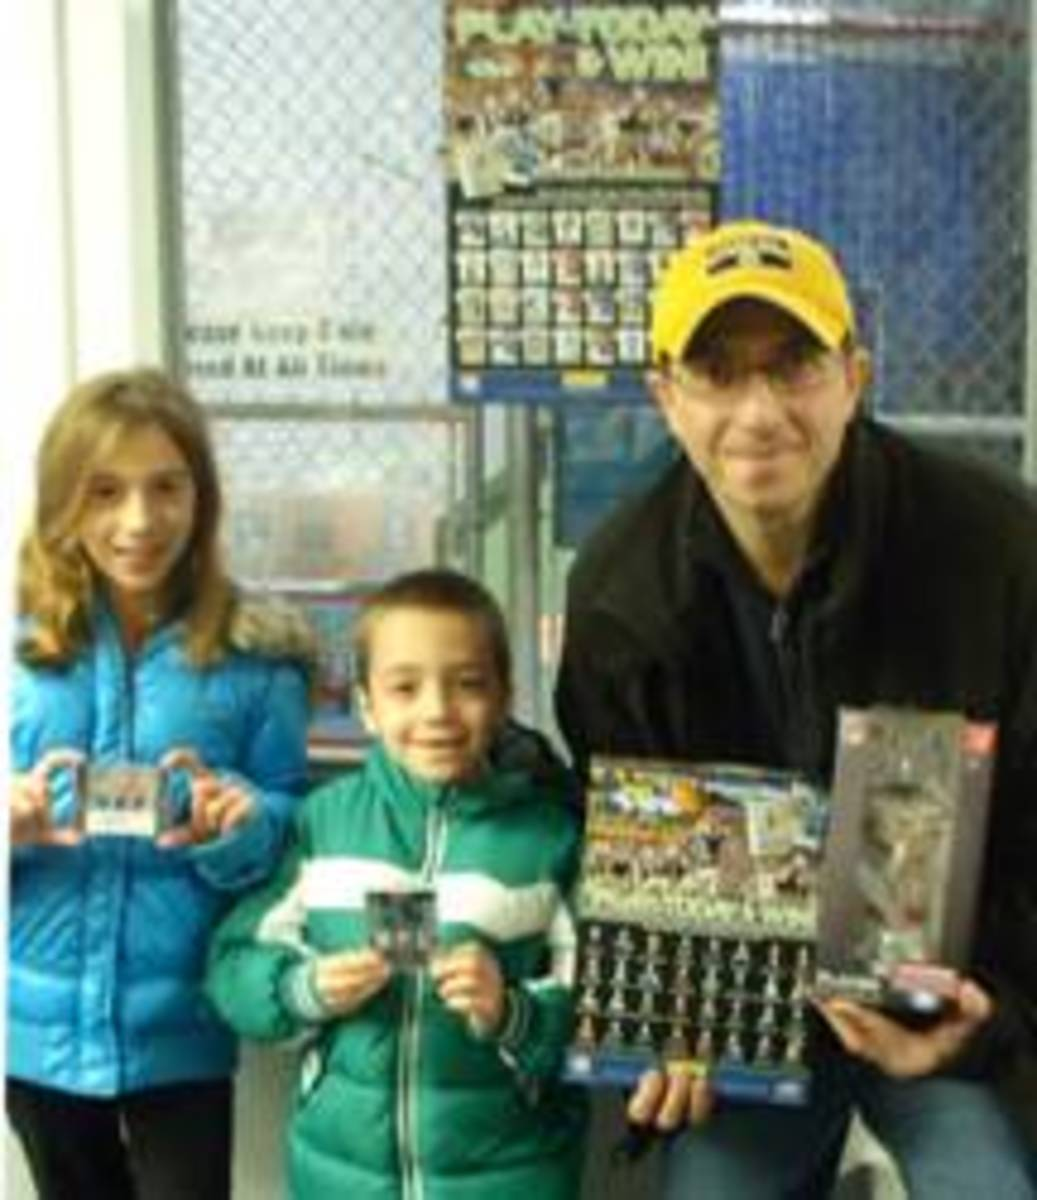 Frank Rosato with his son Michael and daughter Emily showing off the prizes they won at Attack of the Baseball Cards in the Panini NFL Player of the Day promotion.